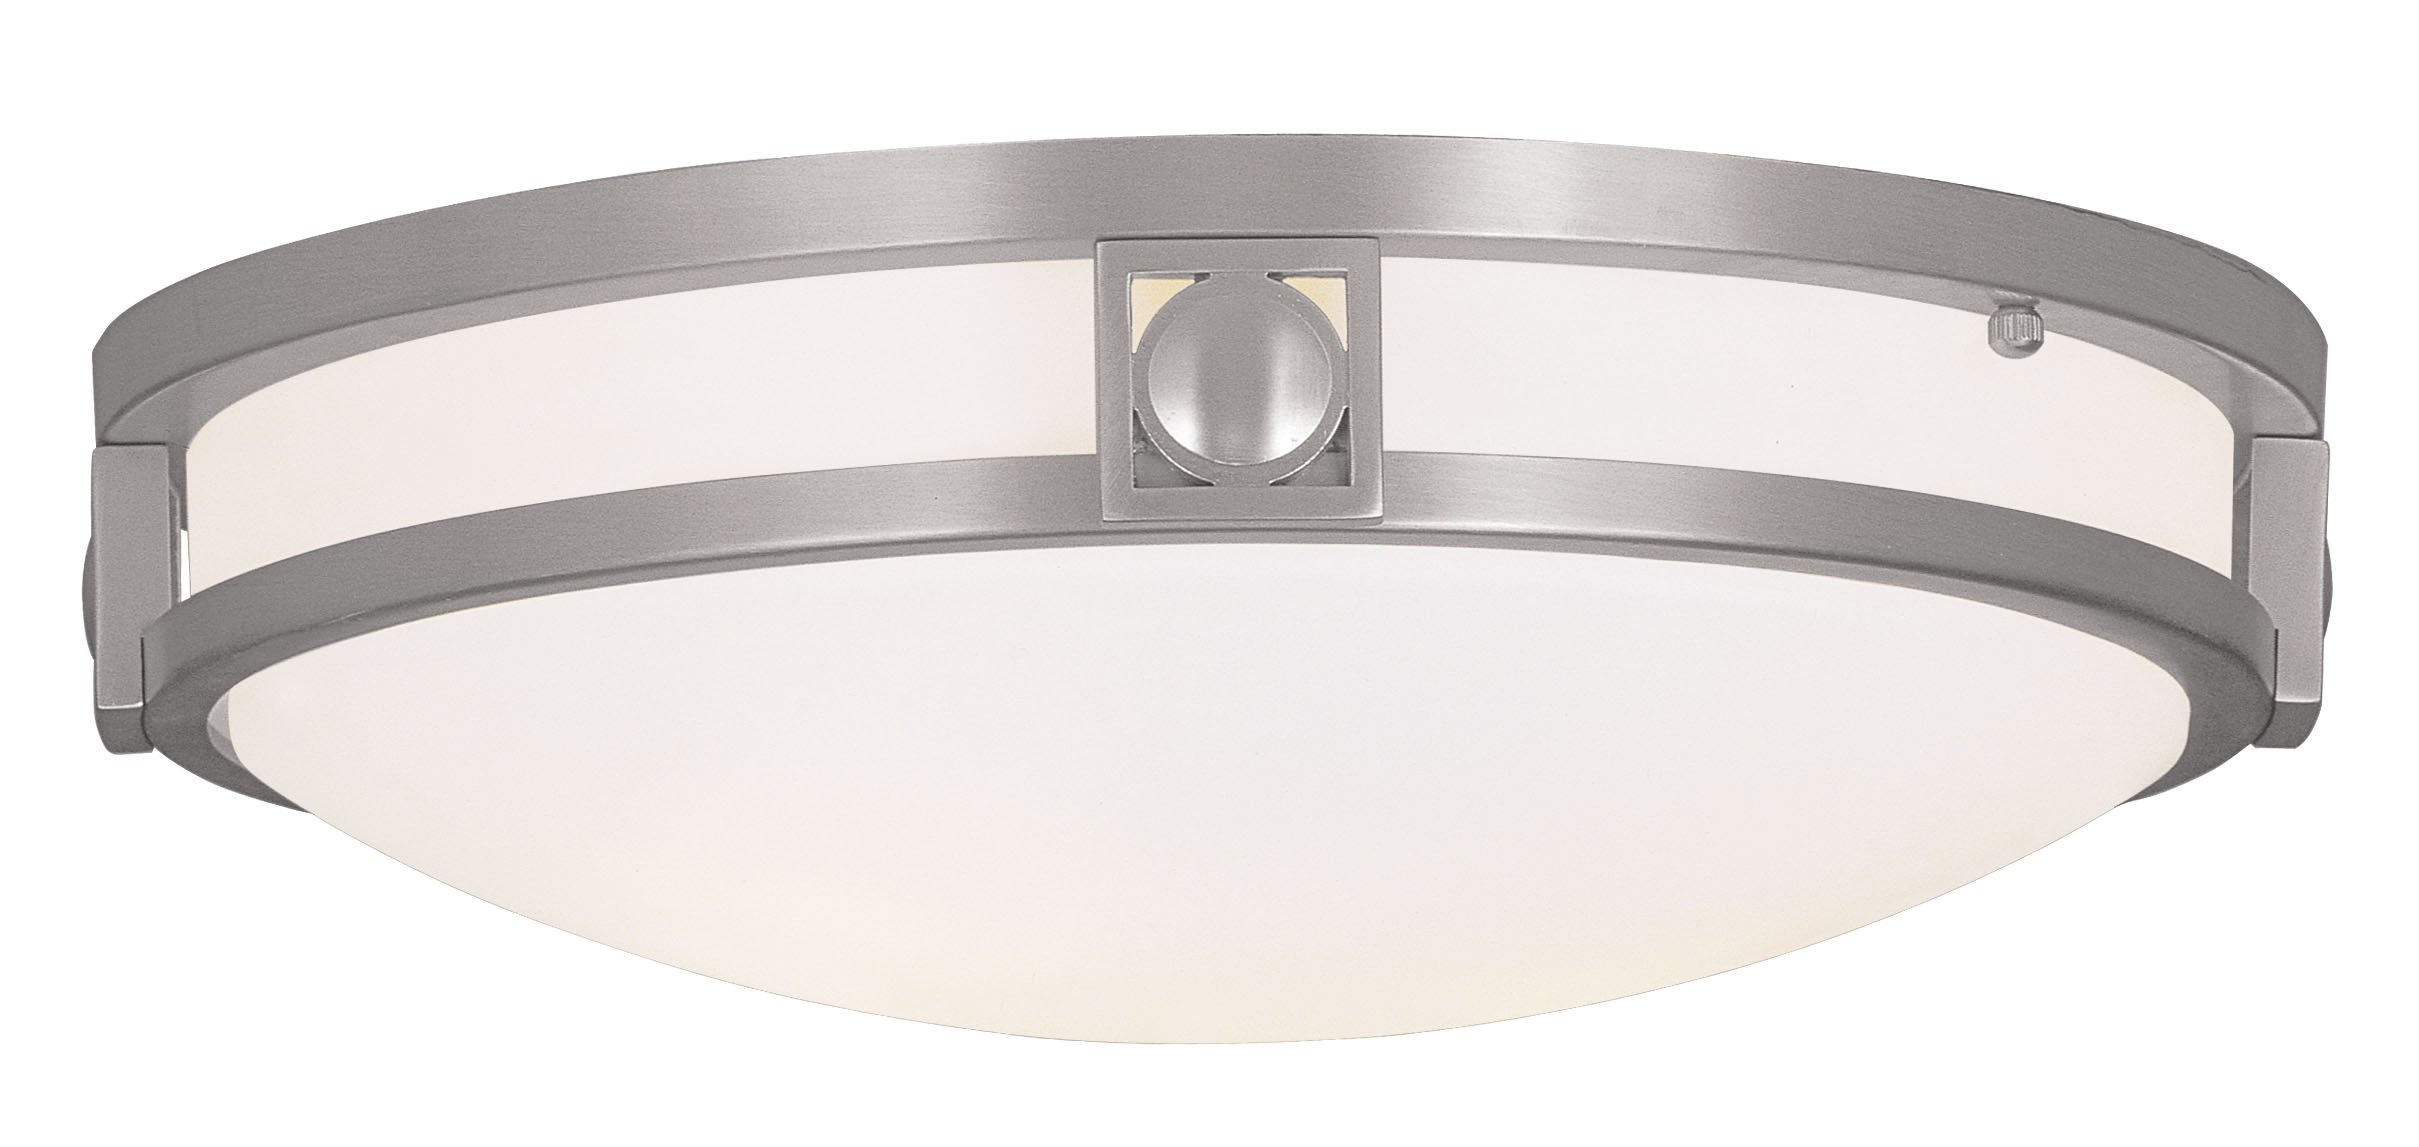 Livex Lighting 4487-91 Titania 2-Light Ceiling Mount, Brushed Nickel by Livex Lighting